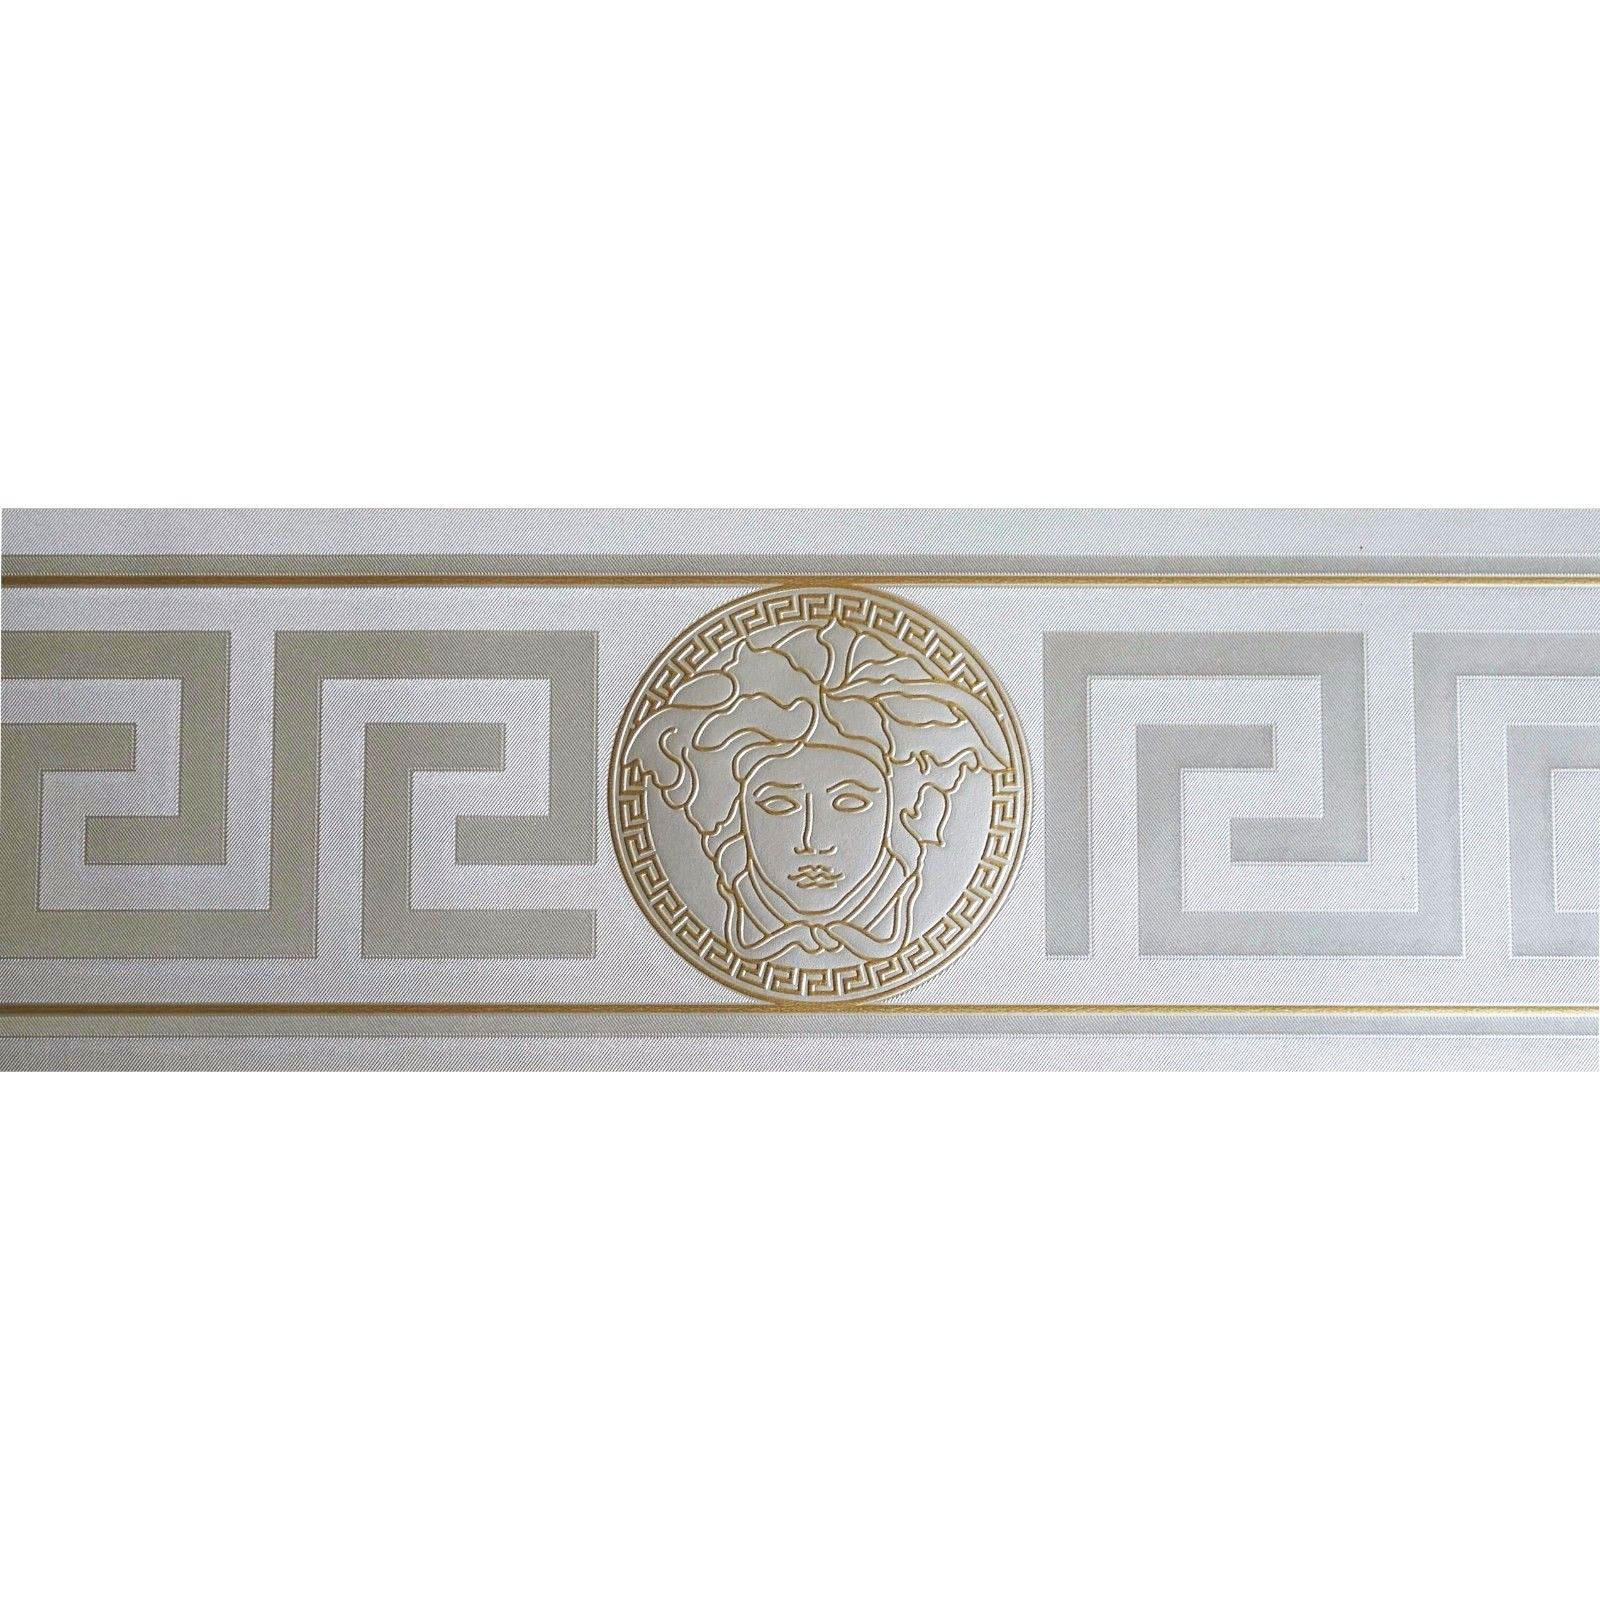 Silver Gold Versace Wallpaper Border Modern Satin Greek Key